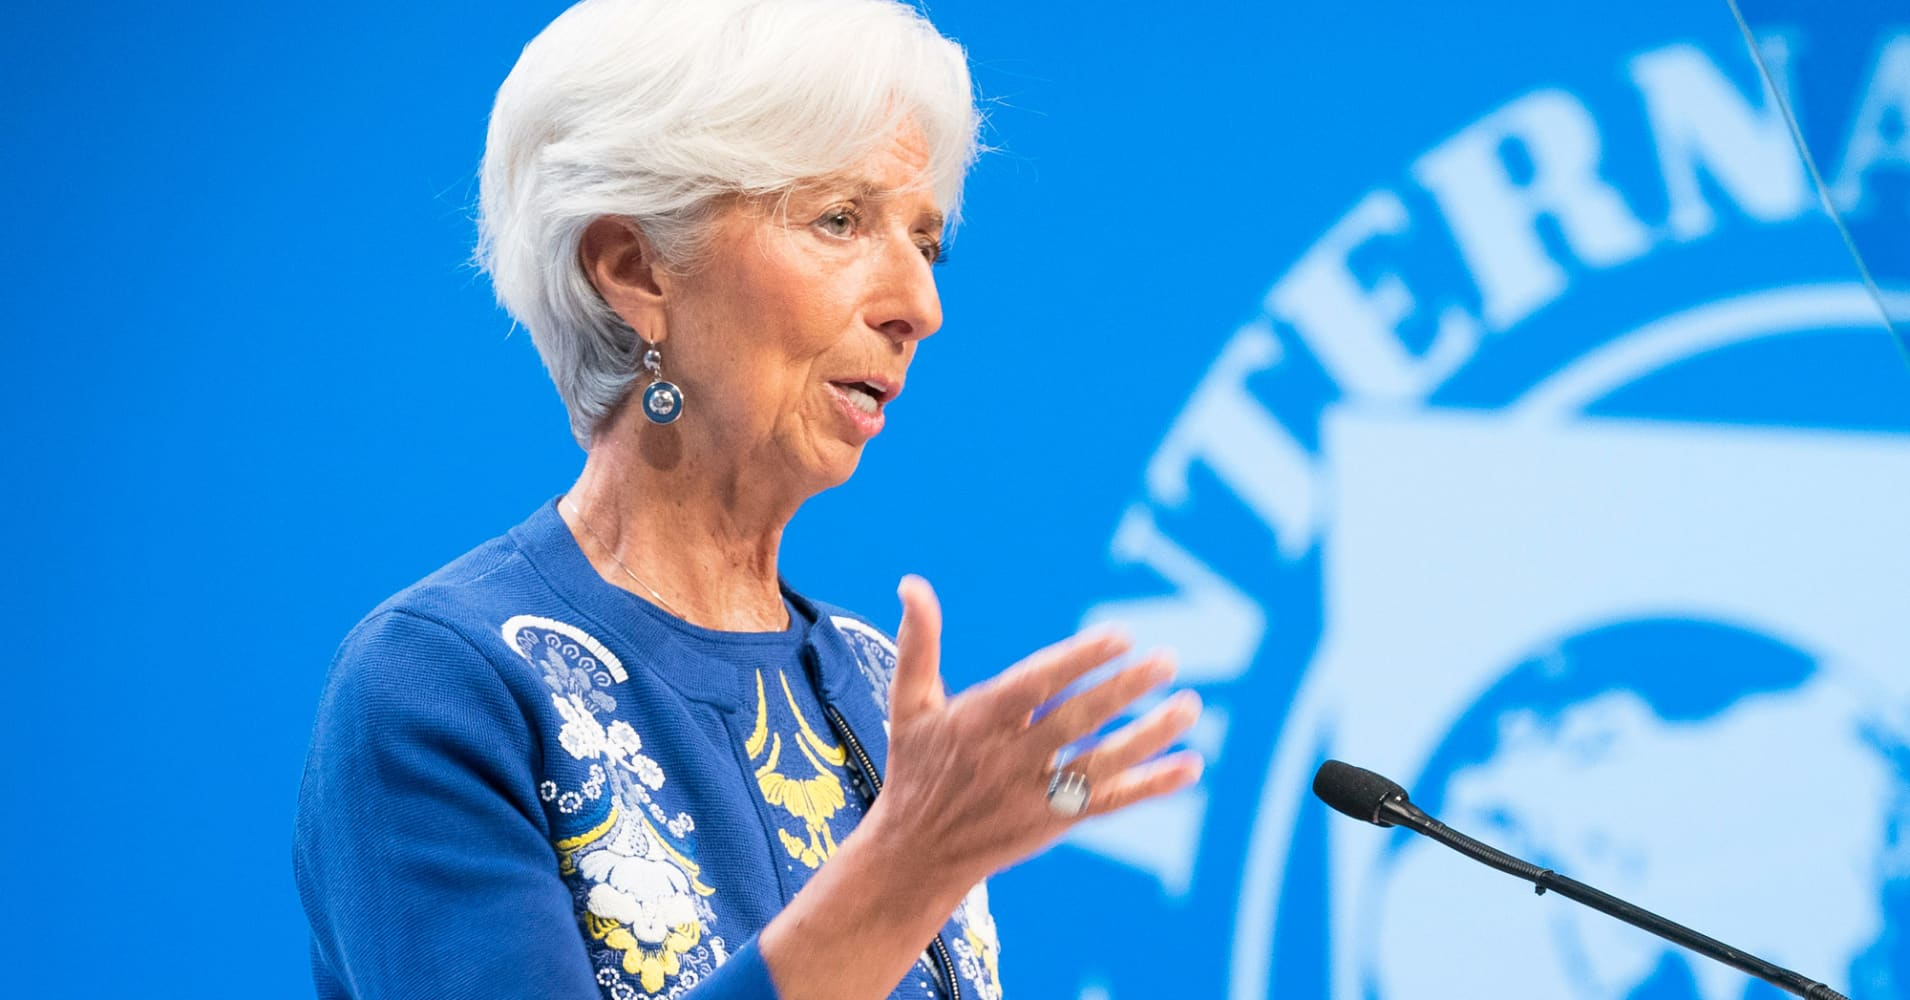 Trade tensions are the biggest risk for the euro zone, the IMF says